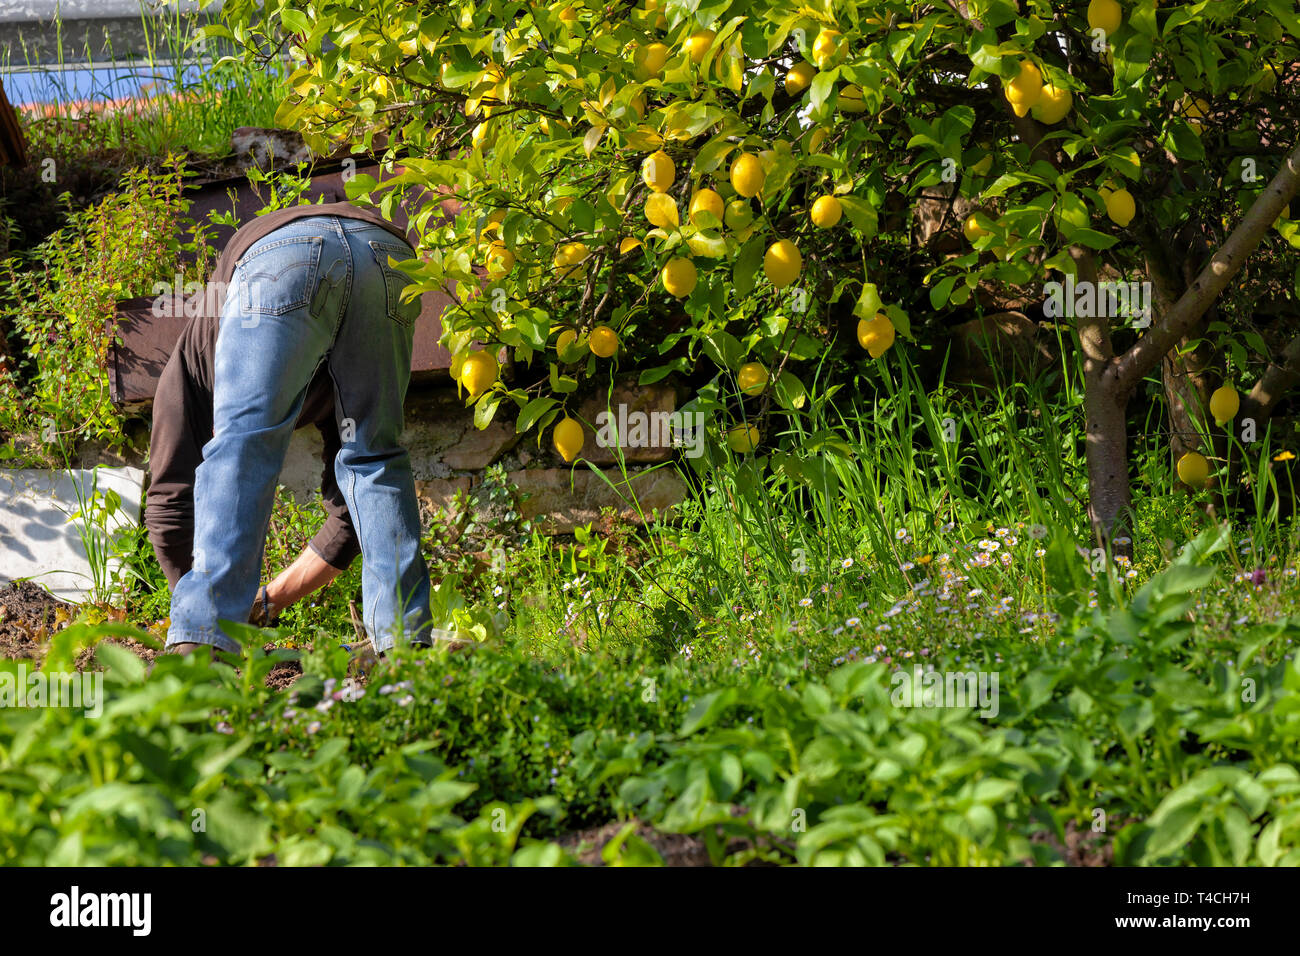 A man cultivating his organic garden of fruits and vegetables. Stock Photo